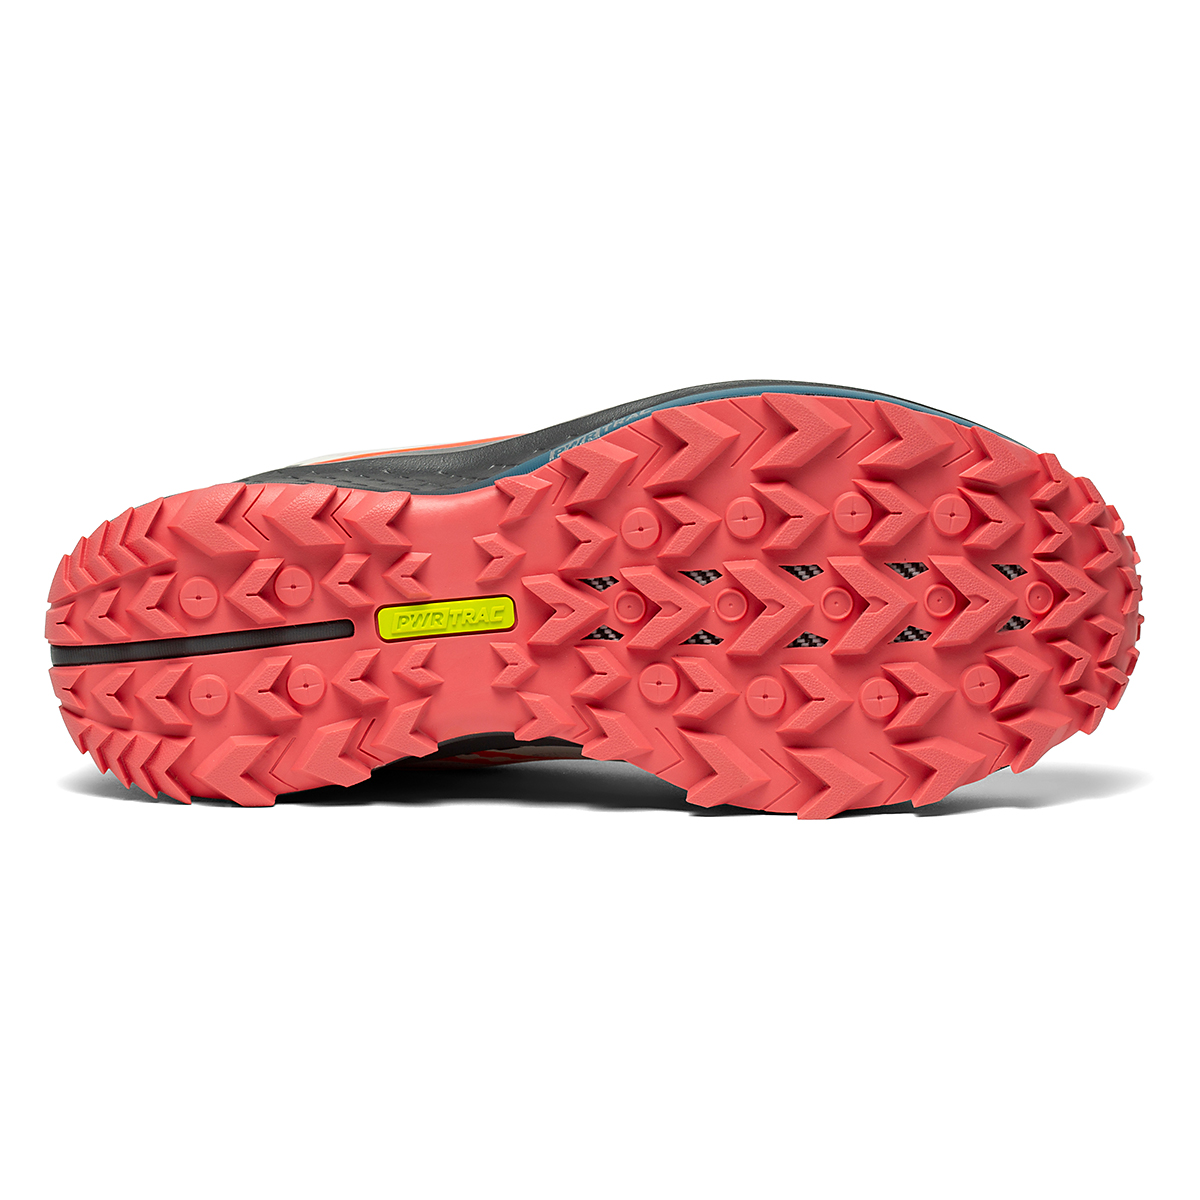 Women's Saucony Peregrine 11 Trail Running Shoe, , large, image 4